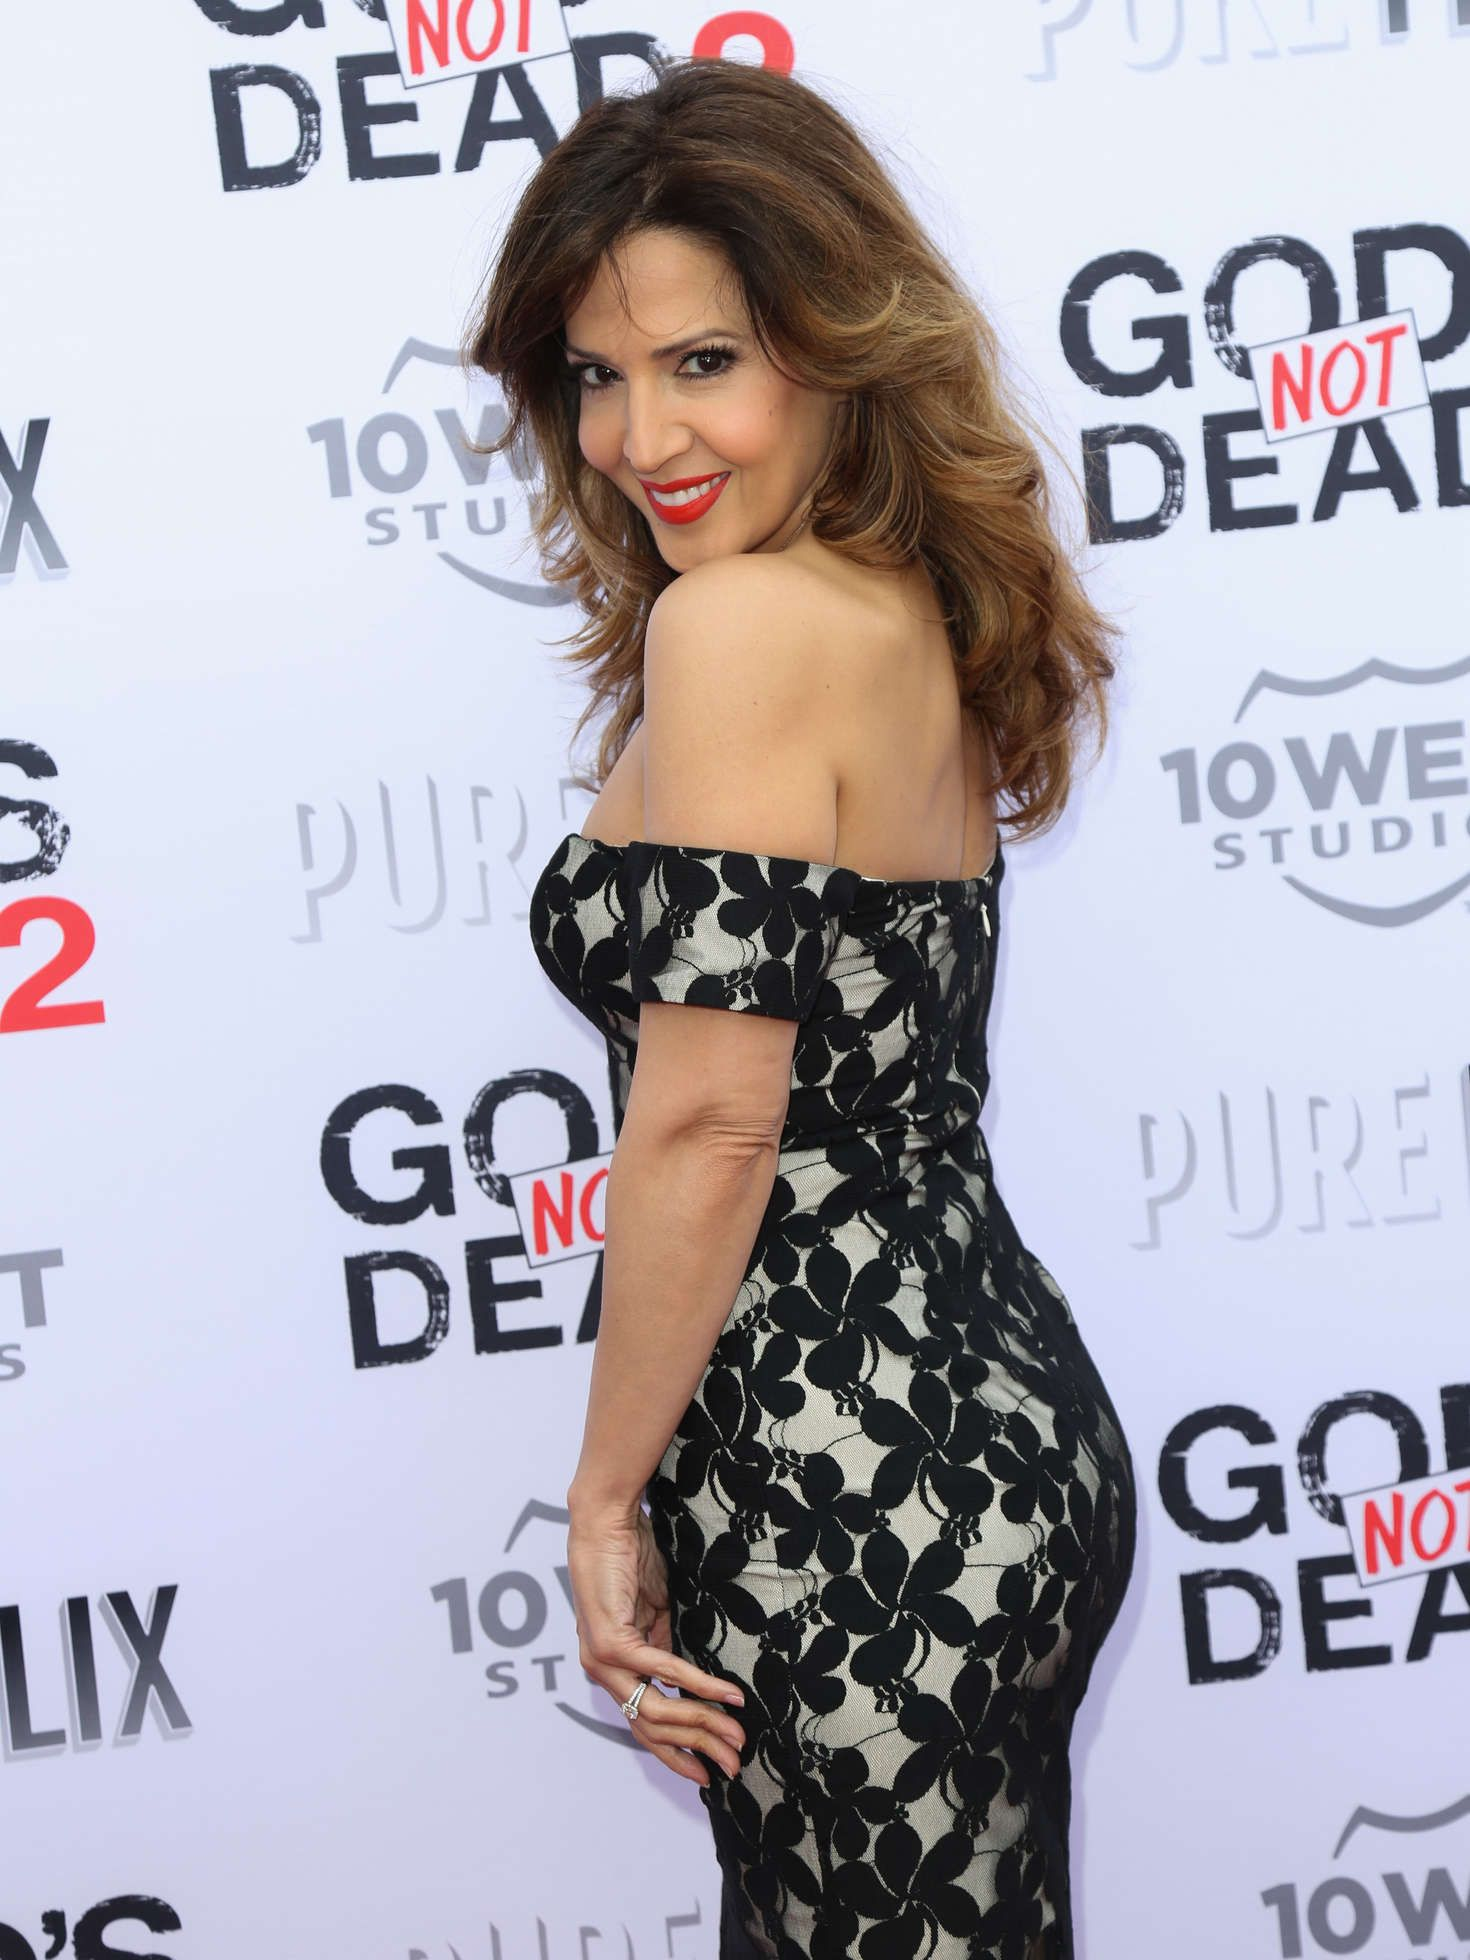 Maria Canals-Barrera nudes (21 foto and video), Sexy, Paparazzi, Boobs, bra 2015